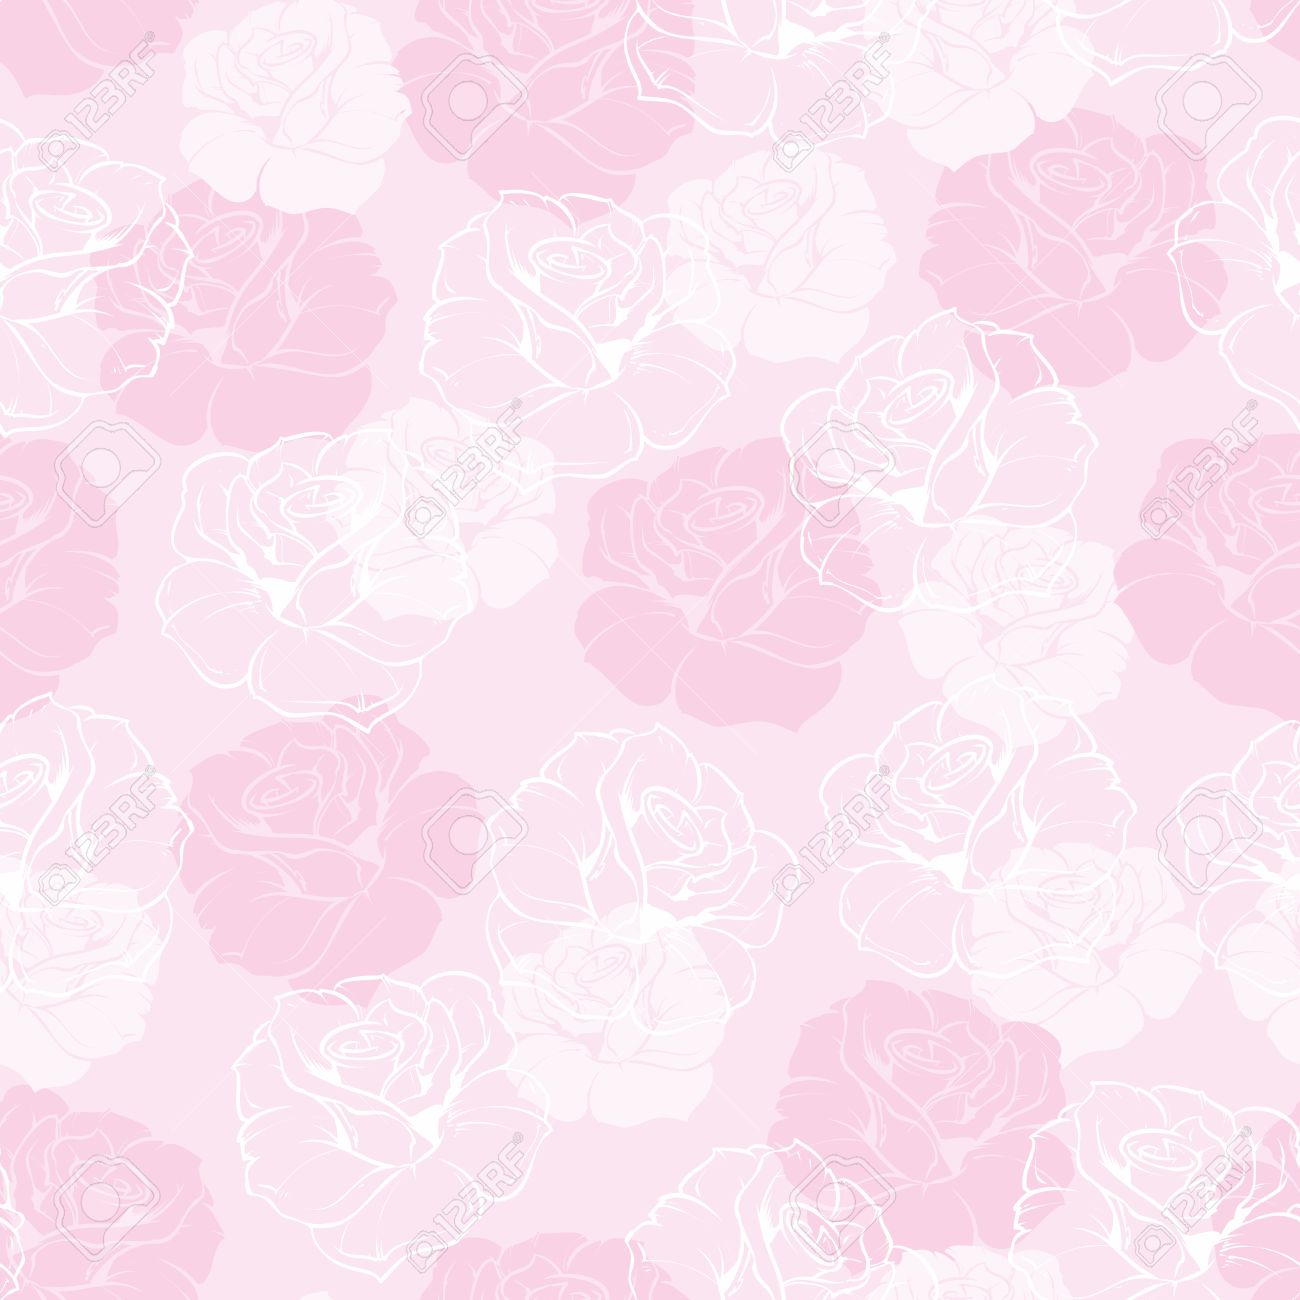 Seamless floral vector pattern with elegant pink and white roses seamless floral vector pattern with elegant pink and white roses and light baby pink background mightylinksfo